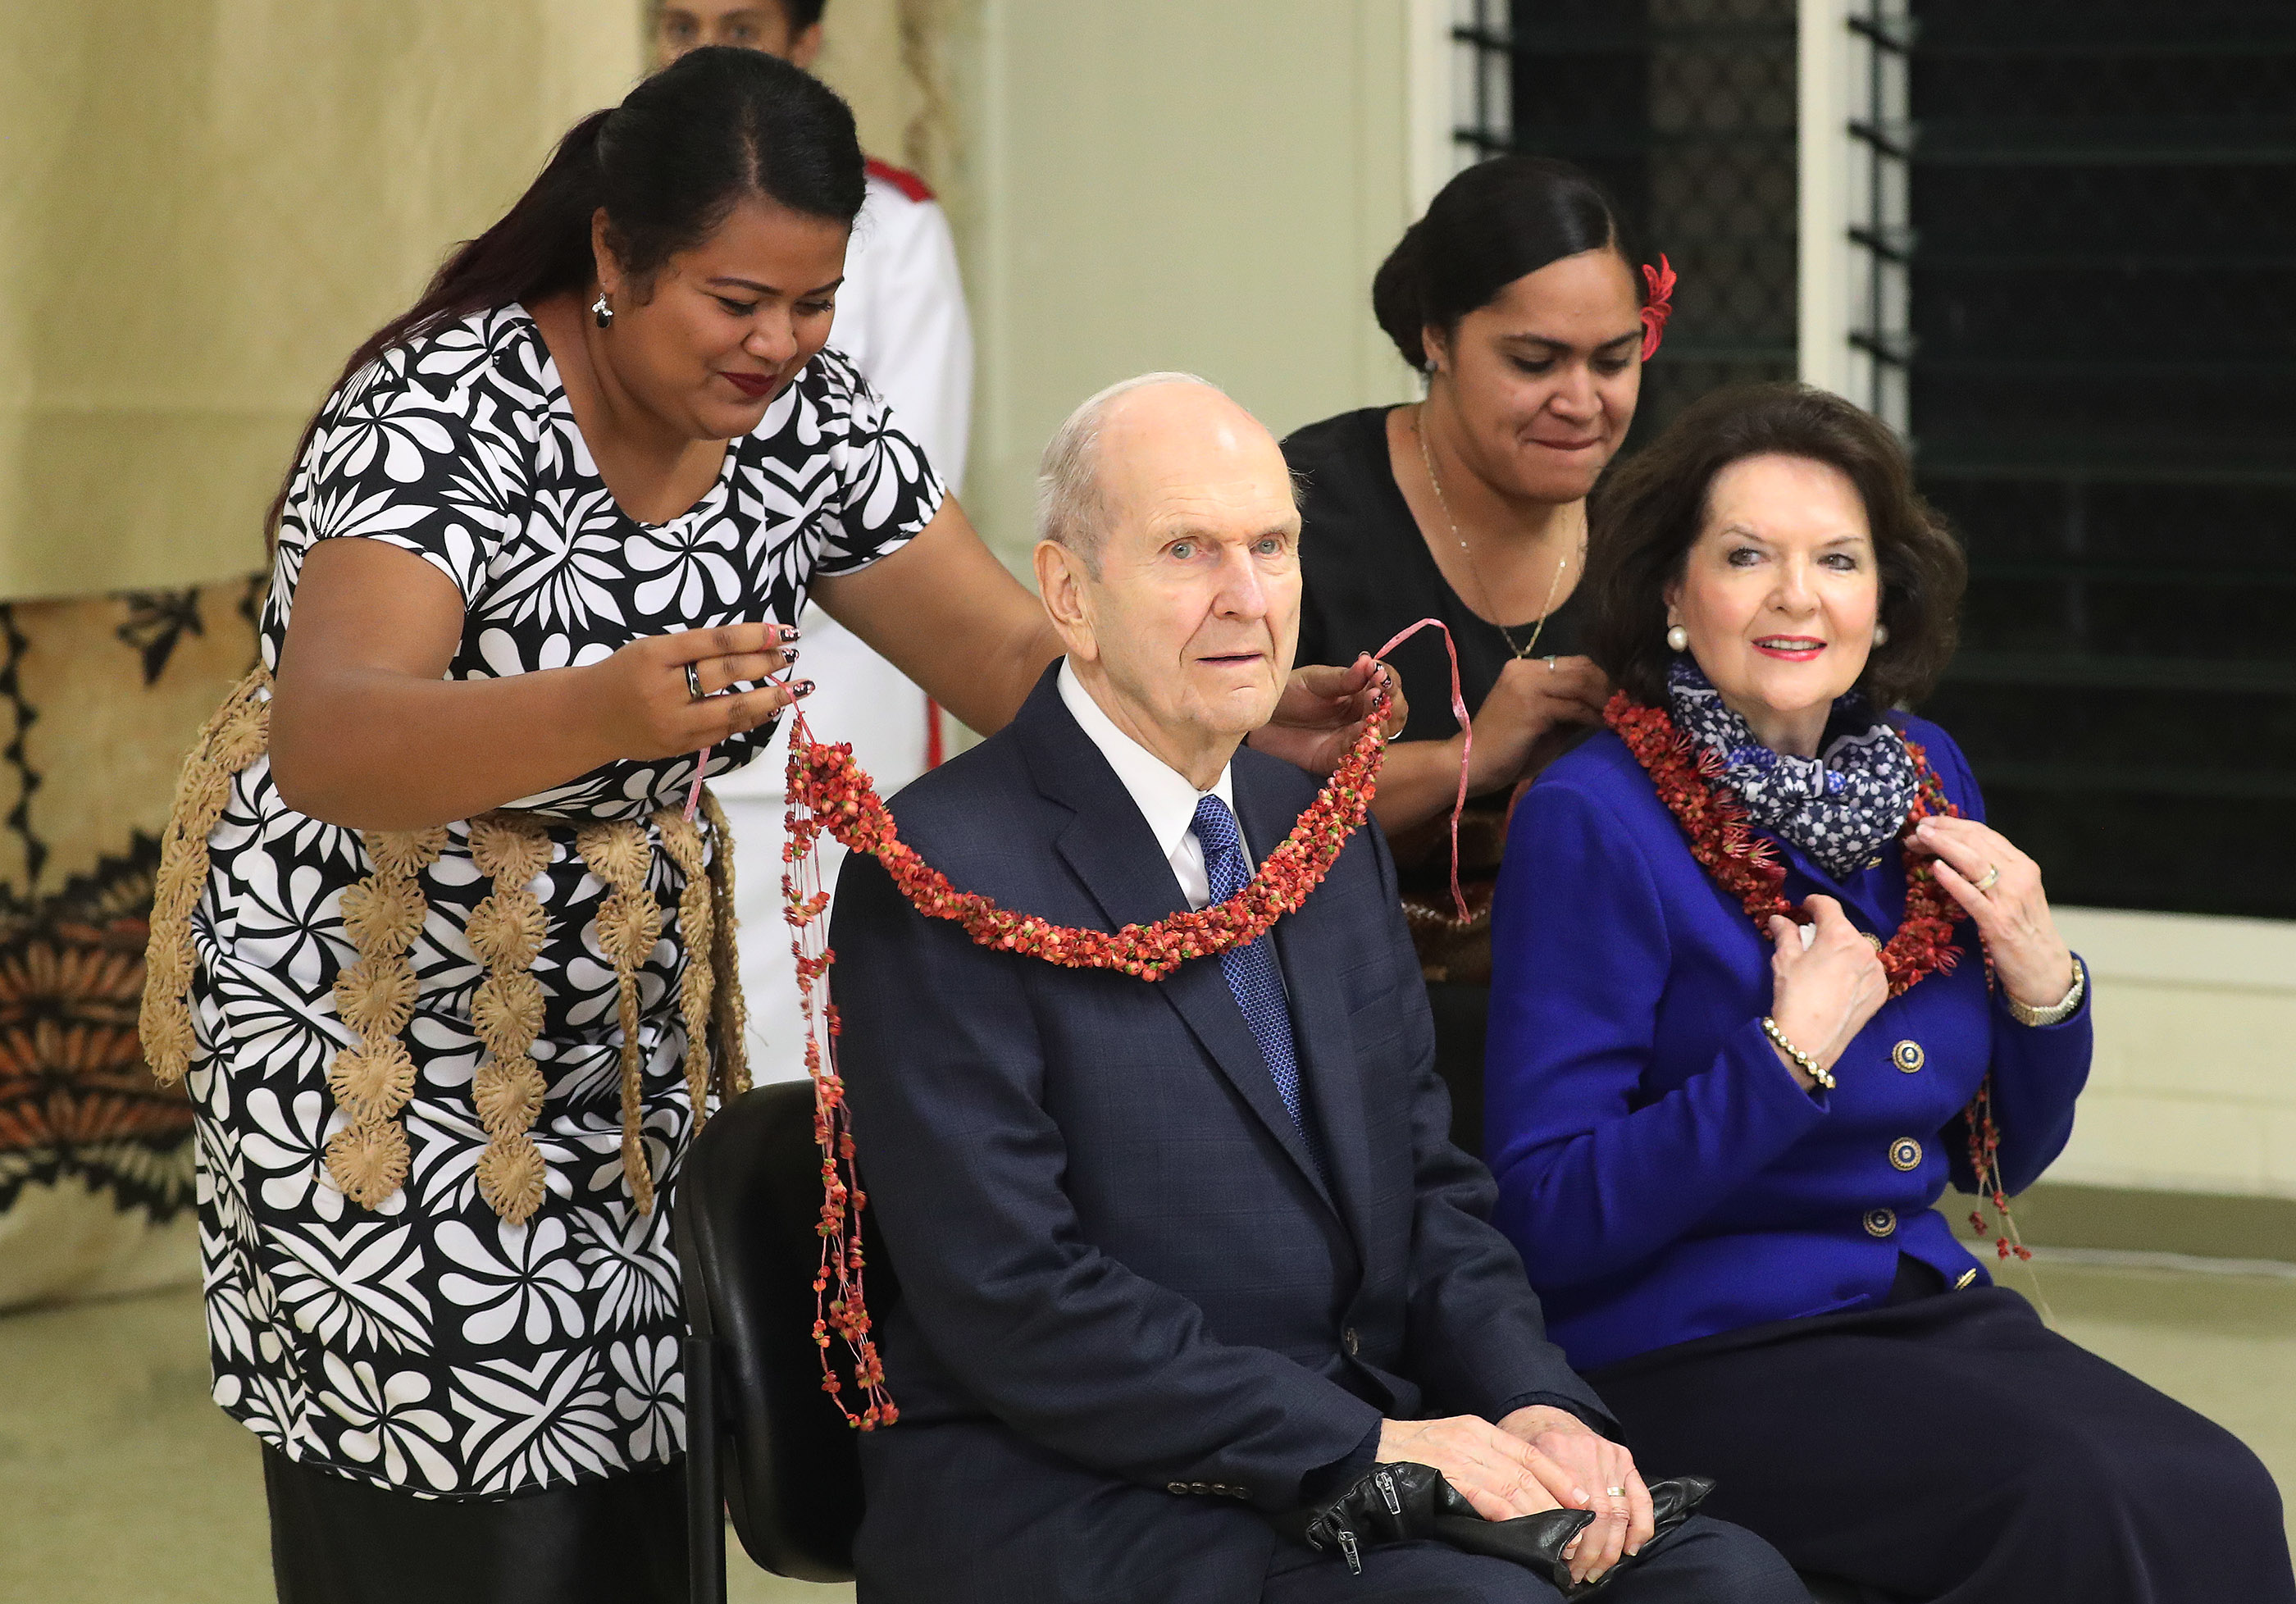 President Russell M. Nelson of The Church of Jesus Christ of Latter-day Saints and his wife, Sister Wendy Nelson, receive a lei in Tonga on May 23, 2019.